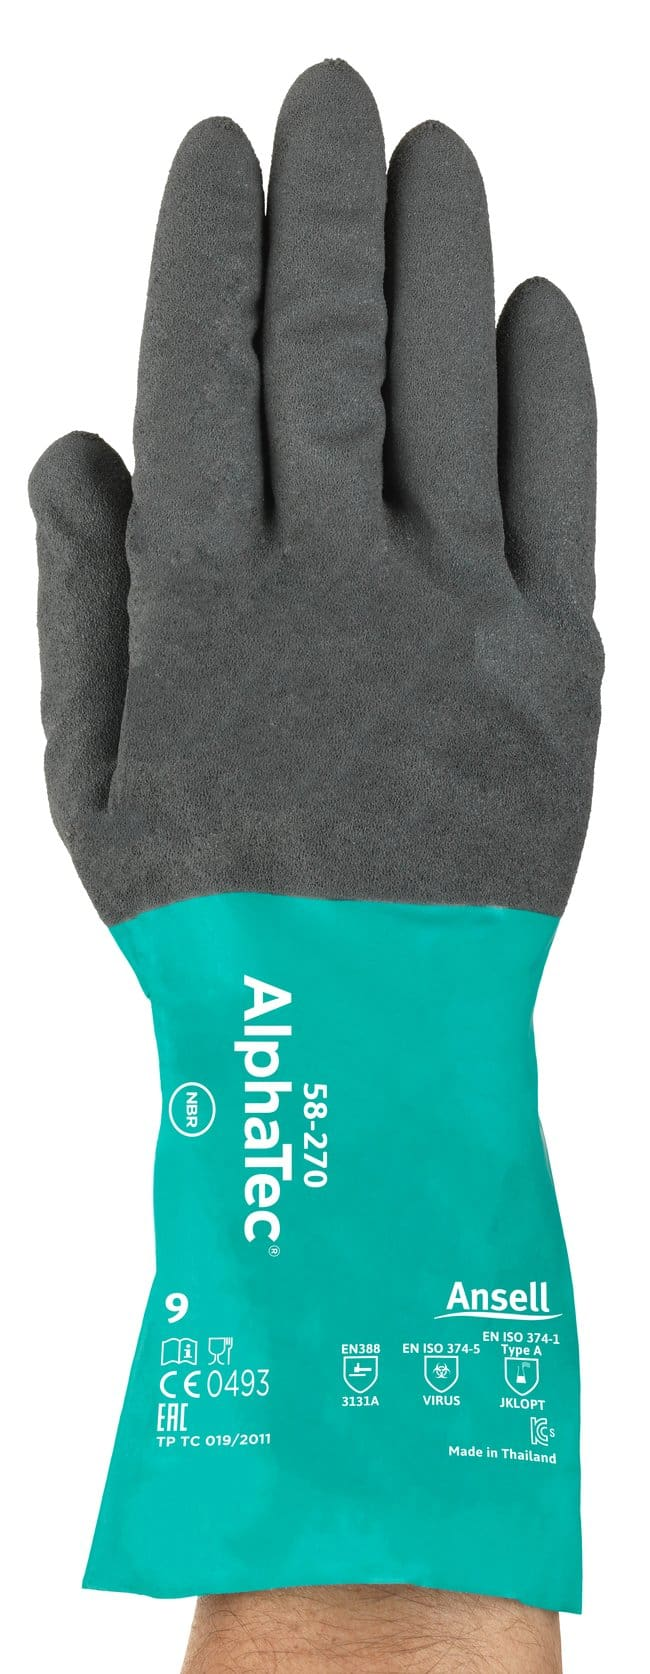 Ansell Edmont™ AlphaTec™ 57-270 Series Nitrile Immersion Gloves Size: 6 Products